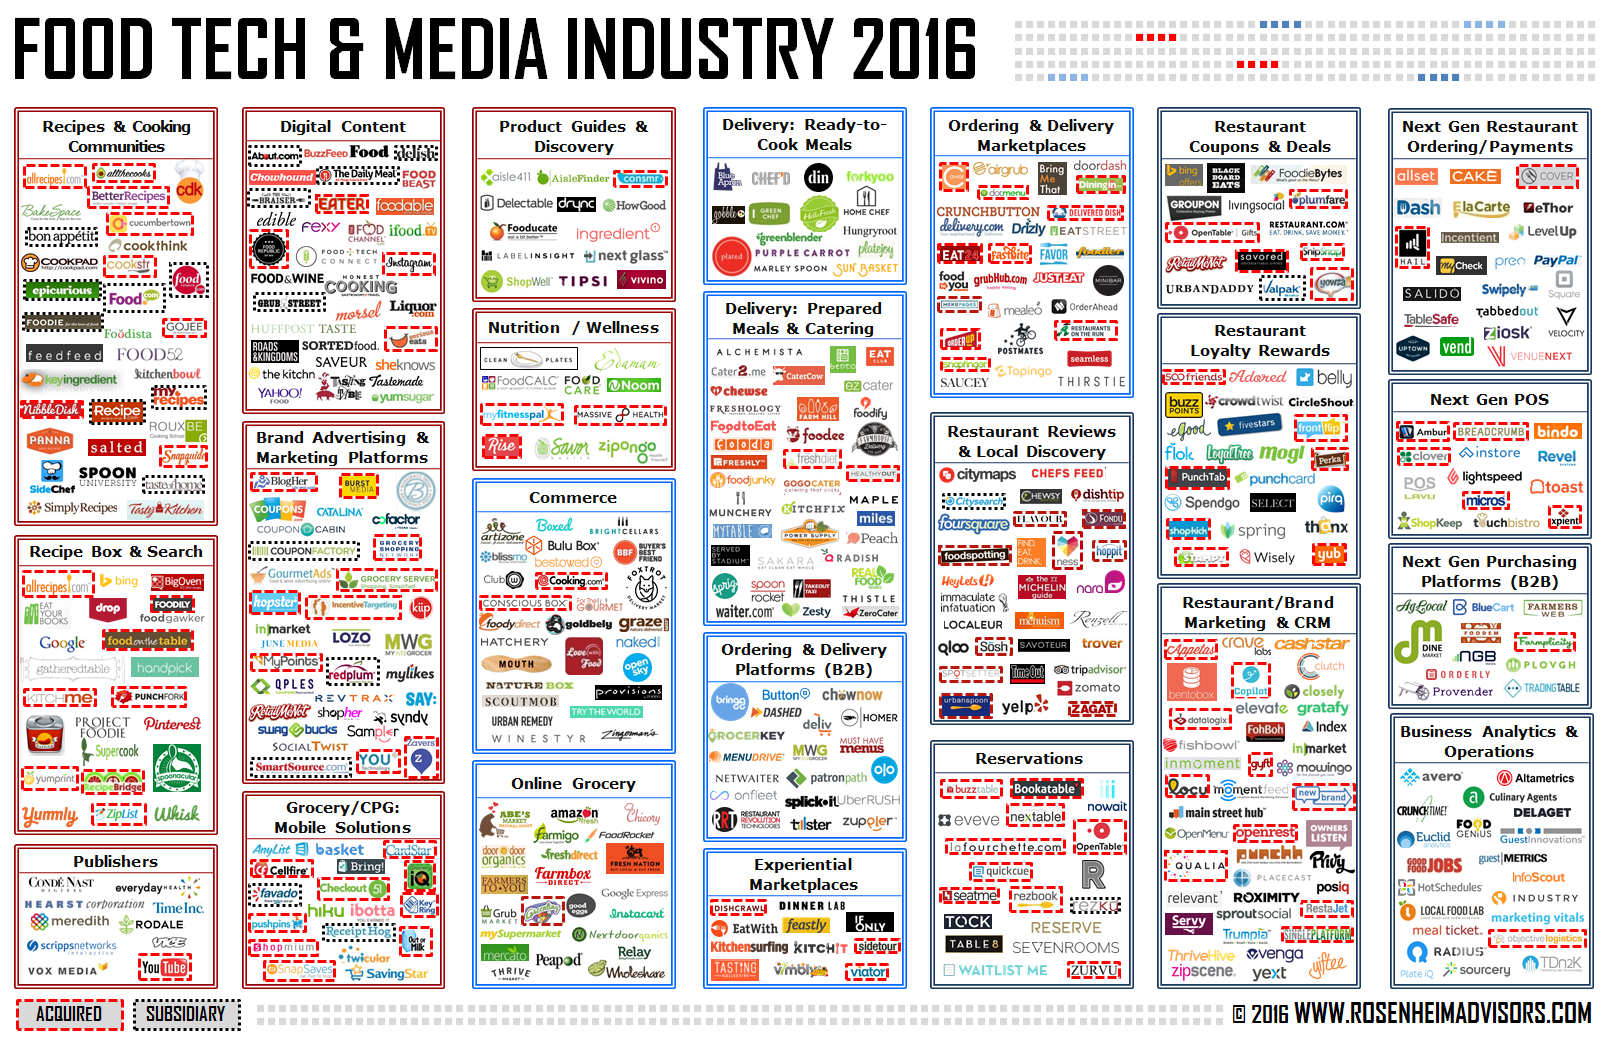 Food Tech & Media Industry 2016